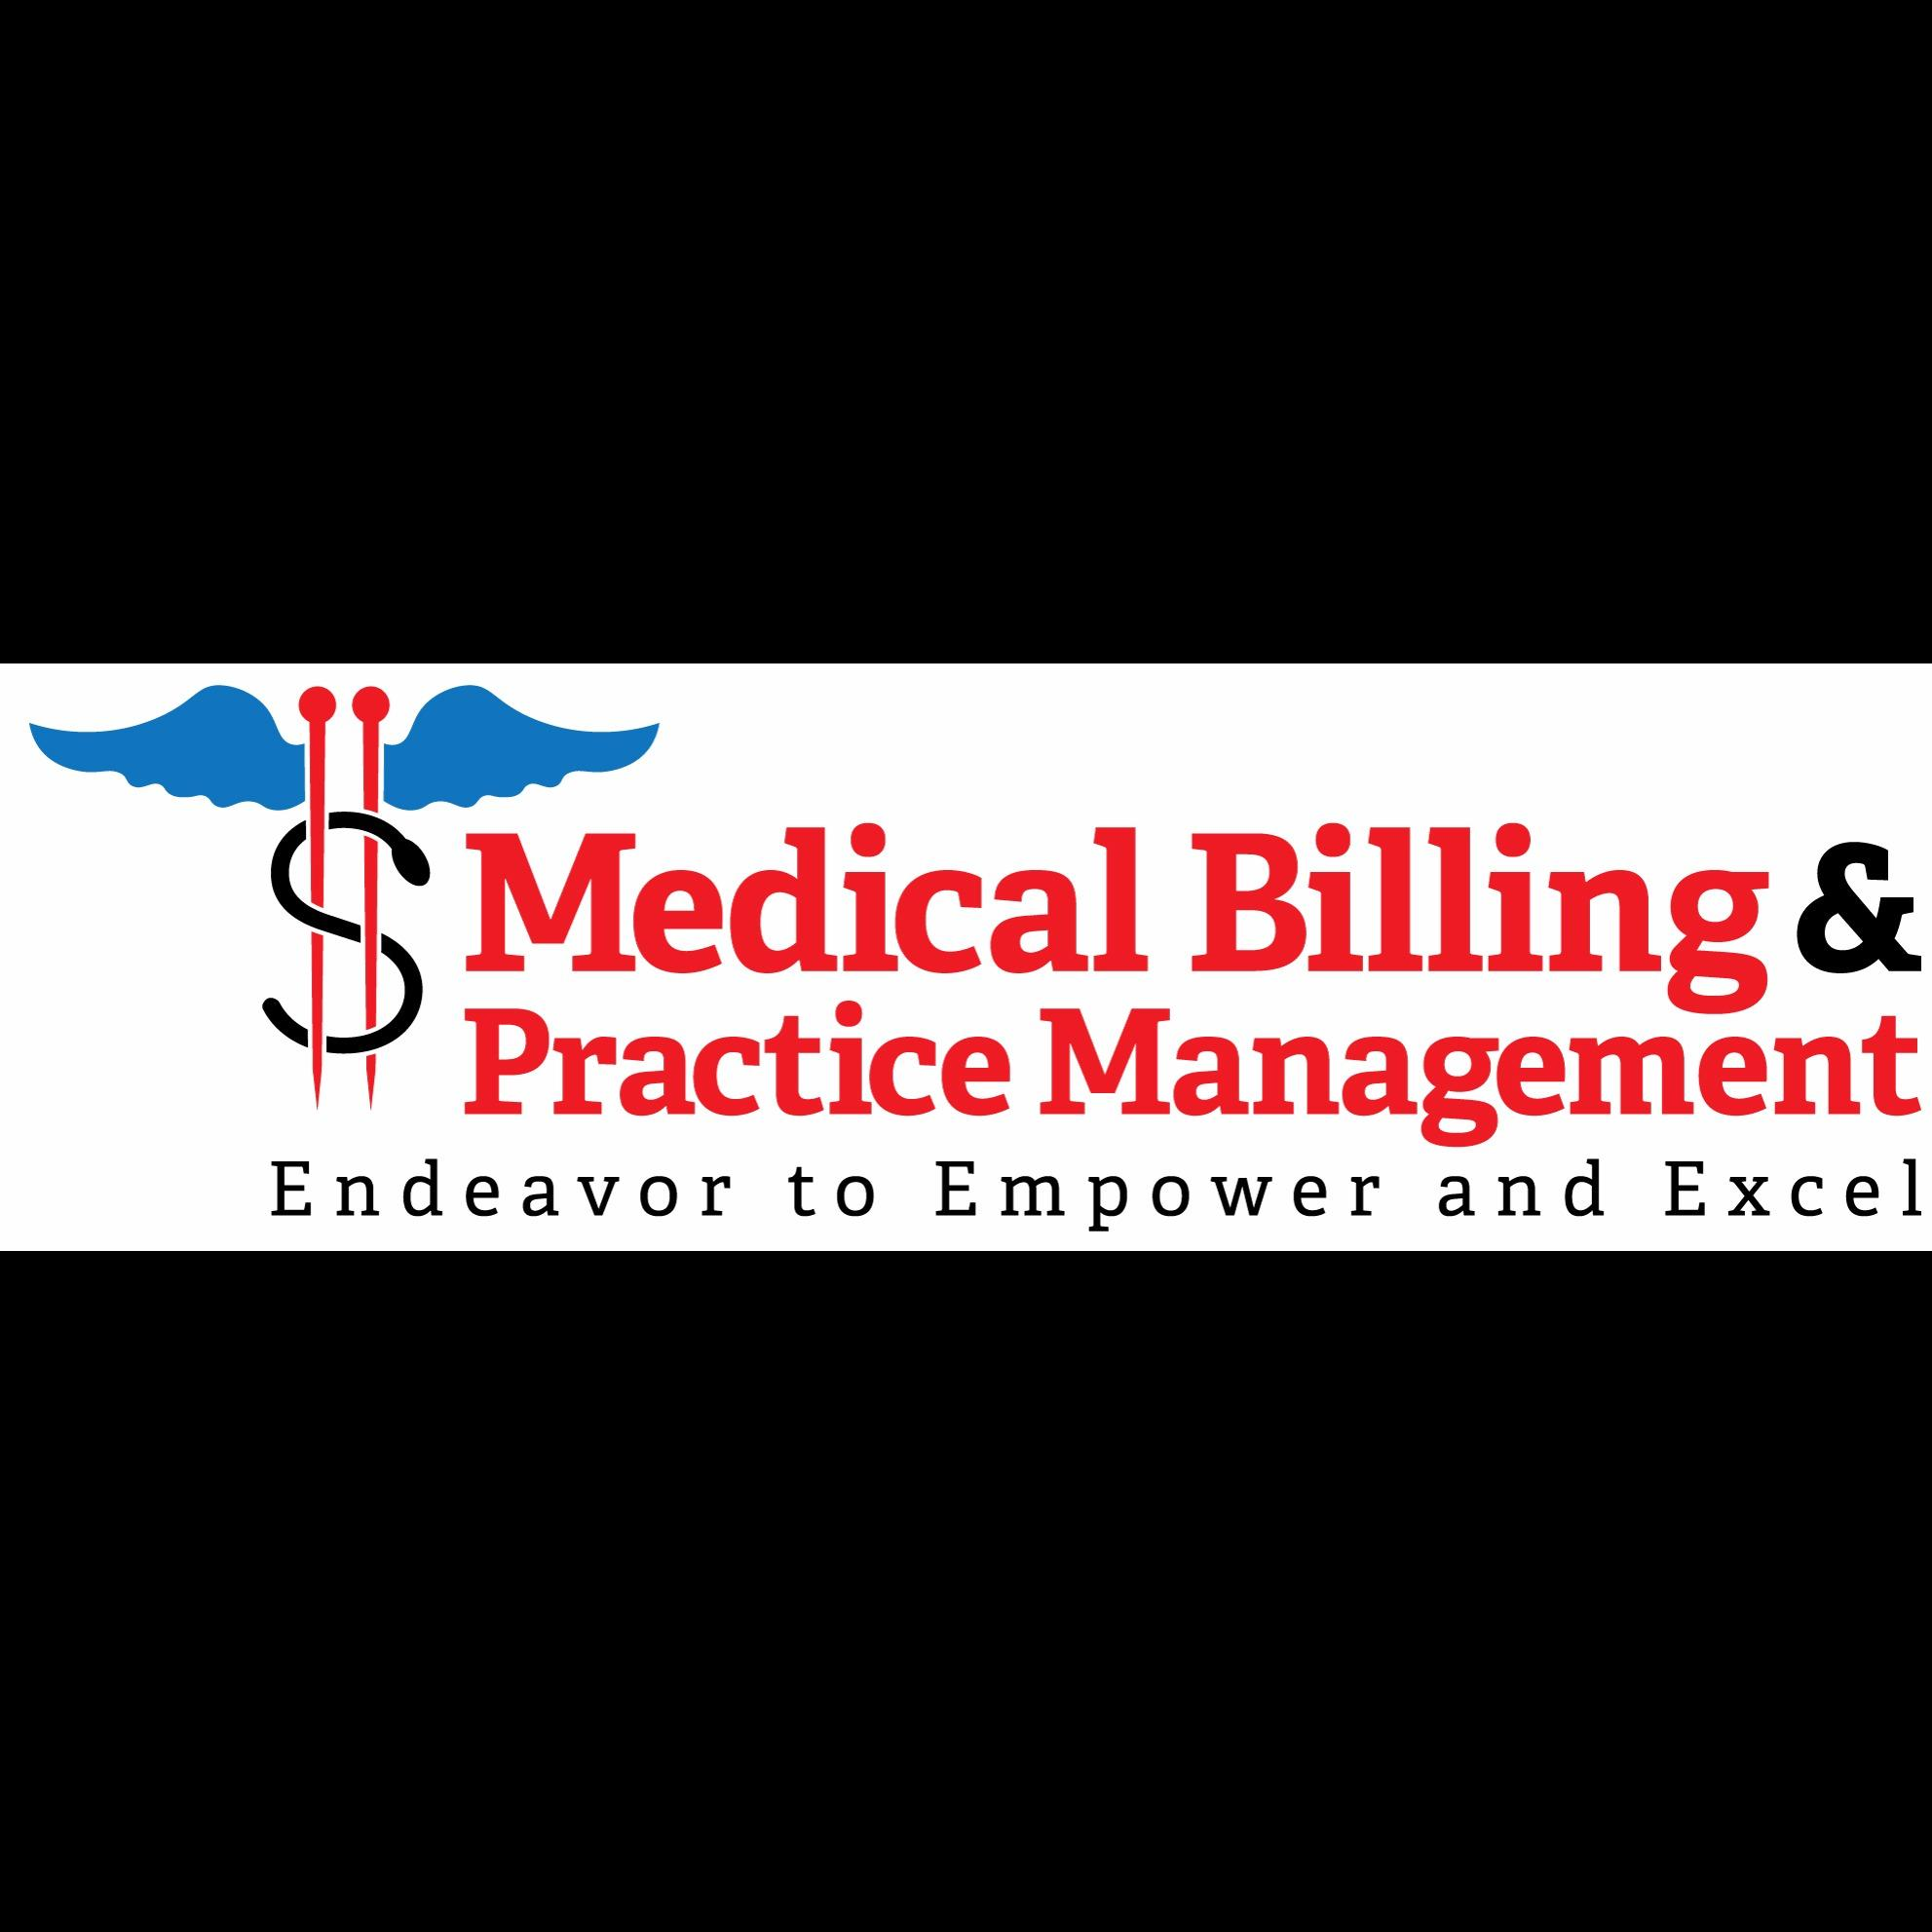 Medical Billing and Practice Management LLC